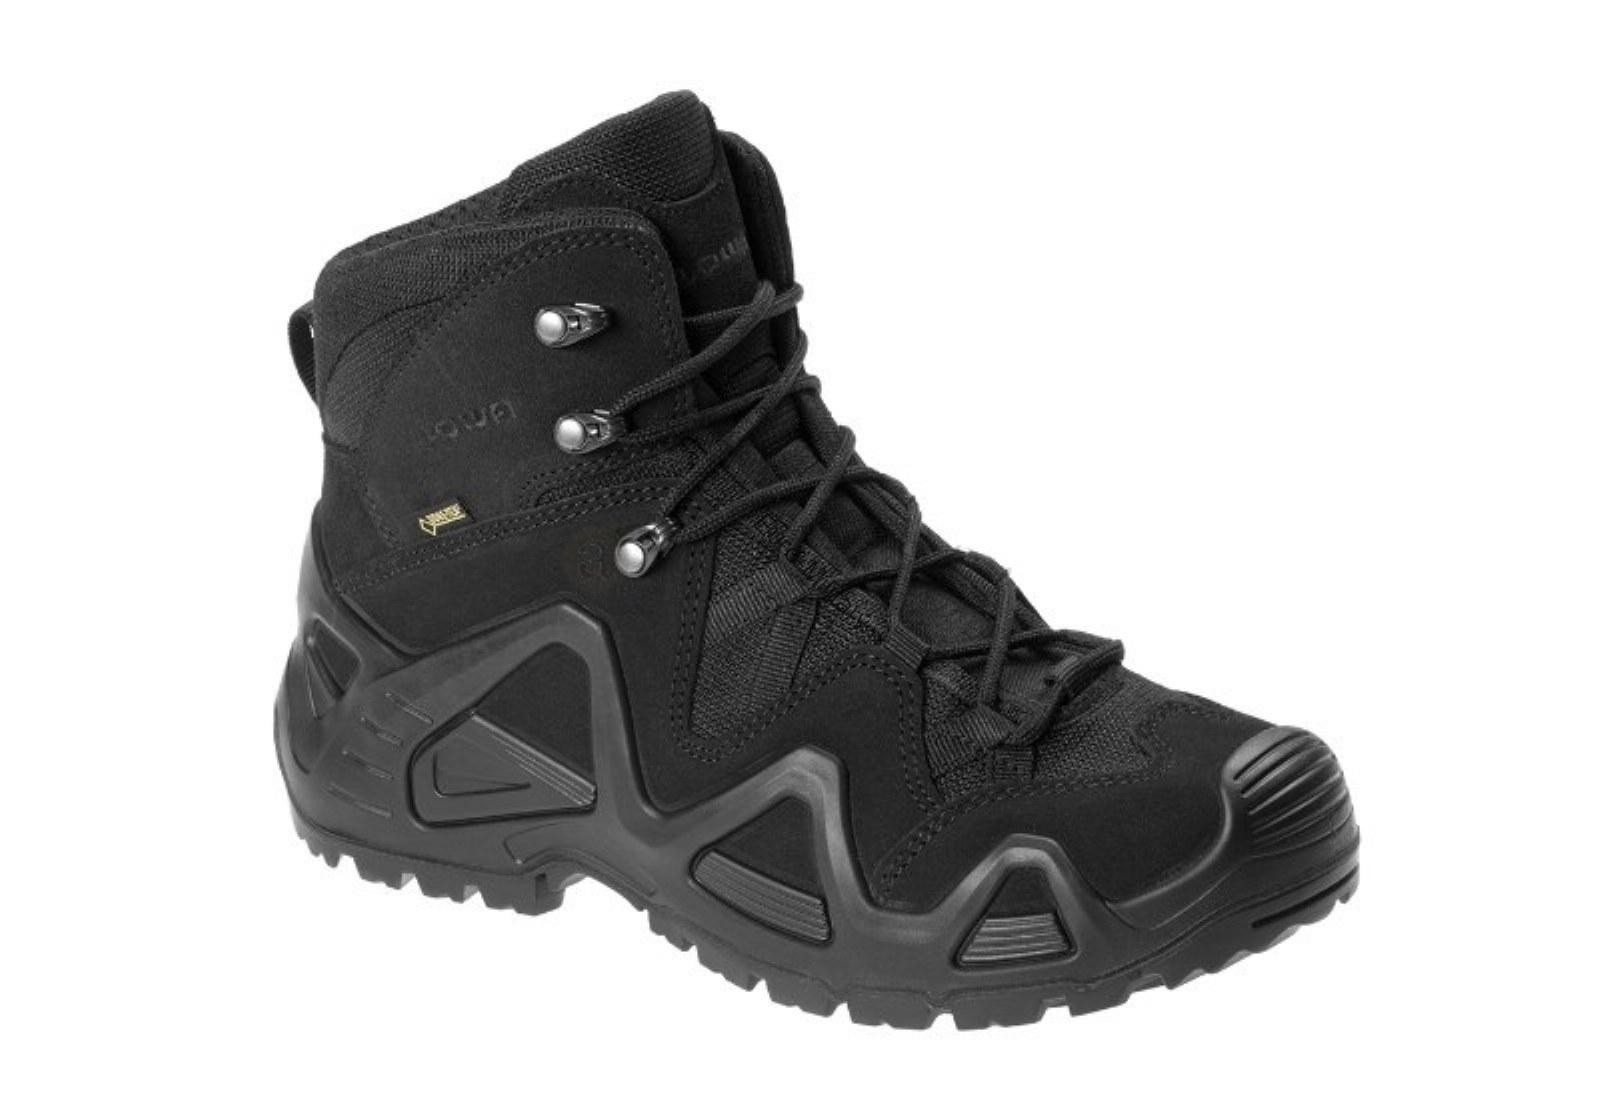 LOWA® Professional Tactical Military Outdoor Boots ZEPHYR GTX® MID TF - Black